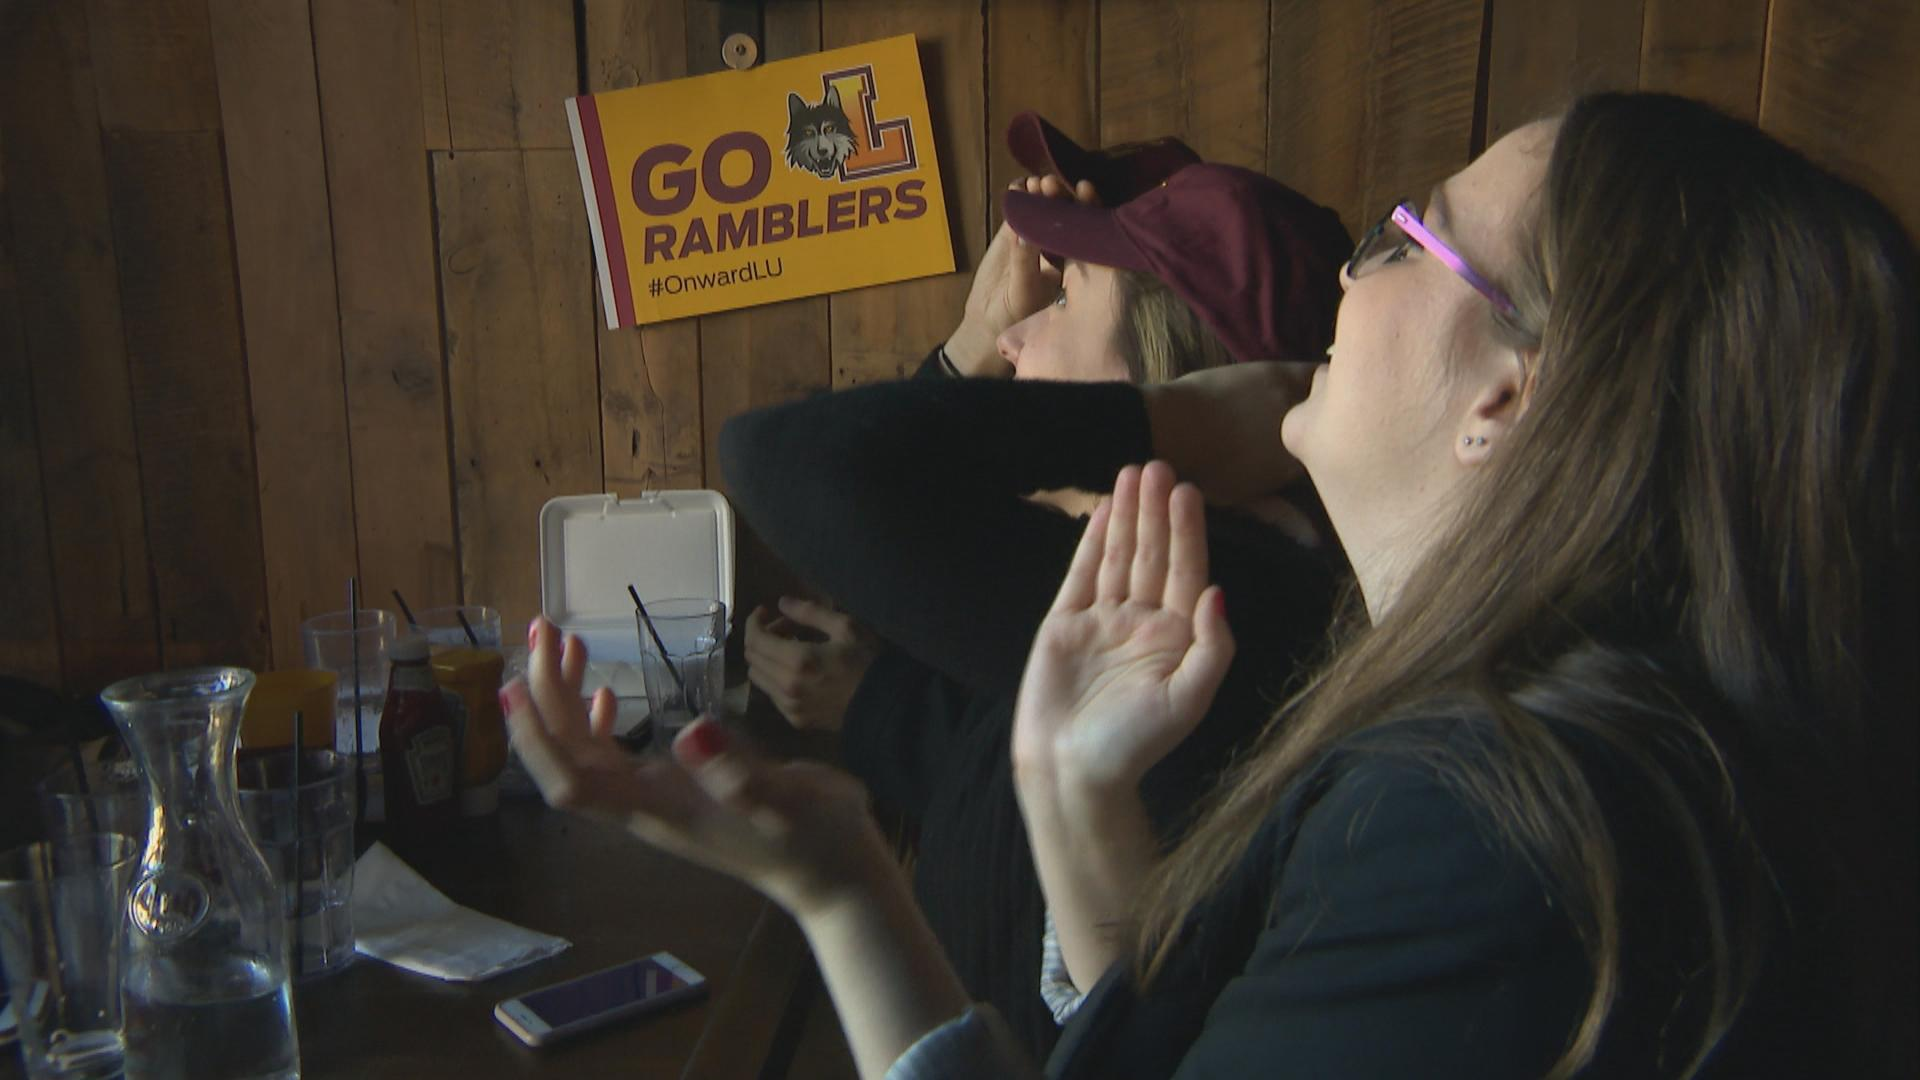 Loyola Ramblers fans cheer on the team at in Rogers Park bar Bruno's on Thursday, March 15, 2018.